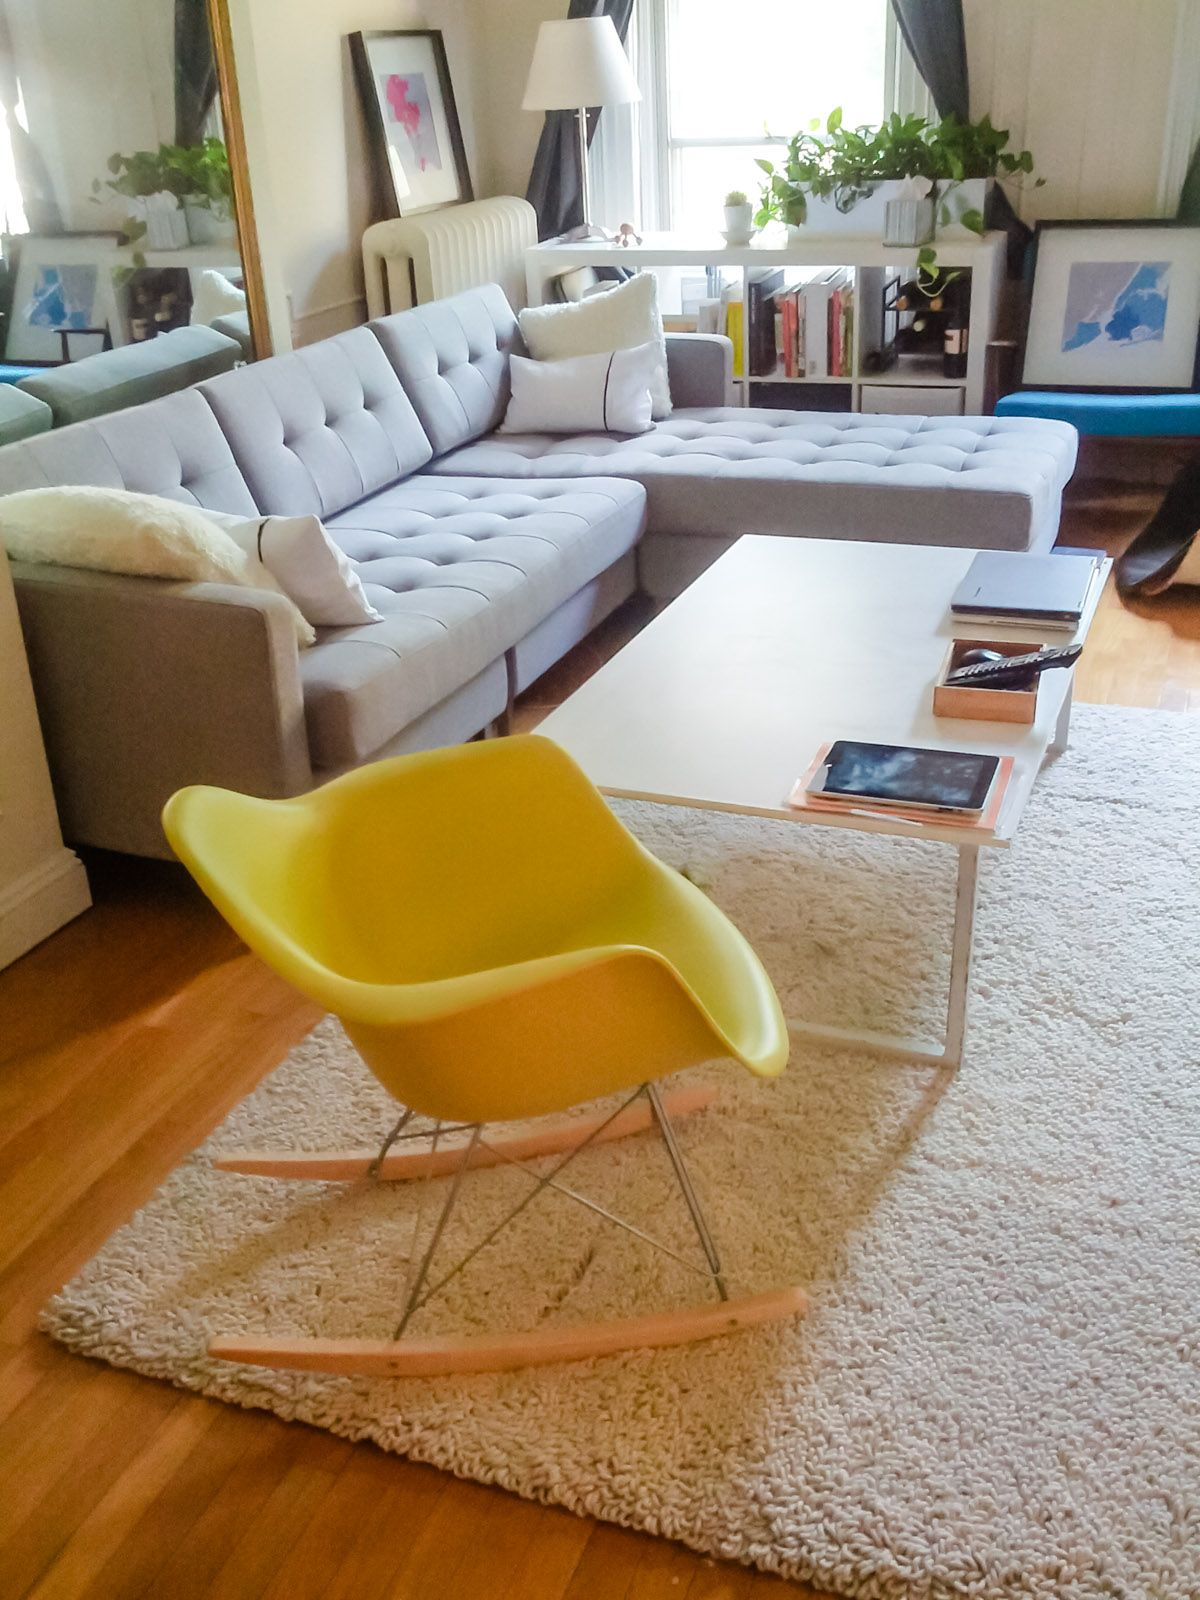 My Living Room Eames Rocker Kofors Jensen Chair Blue In Corner And A Cb2 Sectional Rug From Room And Boar Eclectic Interior Eames Rocker Apartment Design